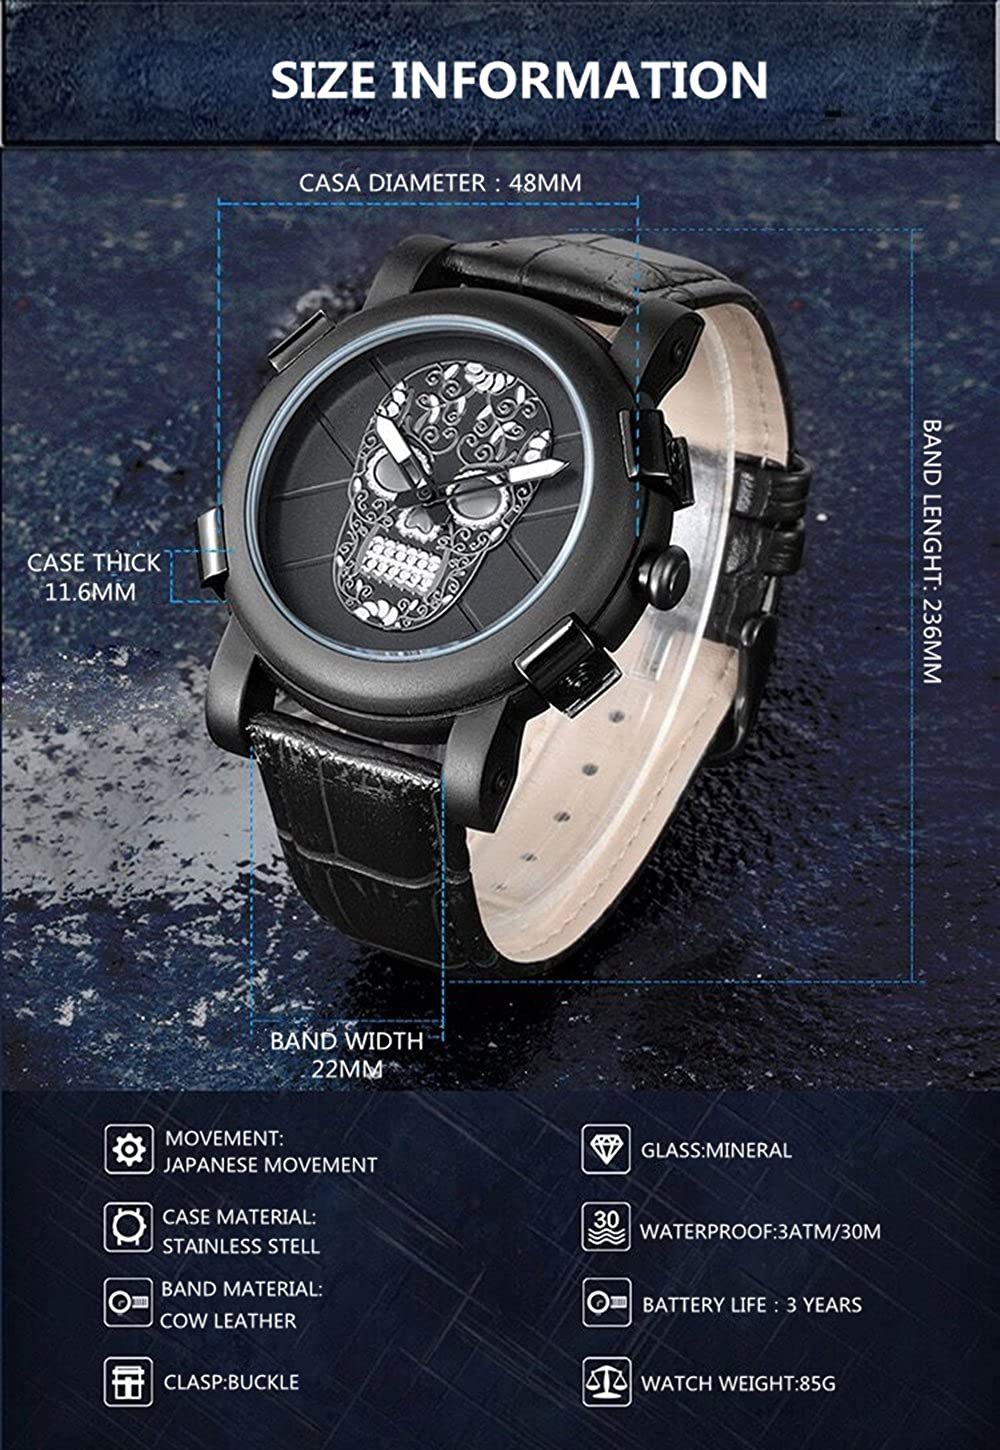 Amazon.com: Skull Watch Waterproof Casual Analog Christmas Gift Watches Clearance Genuine Leather Sport Watches for Men Relogio Masculino: Watches